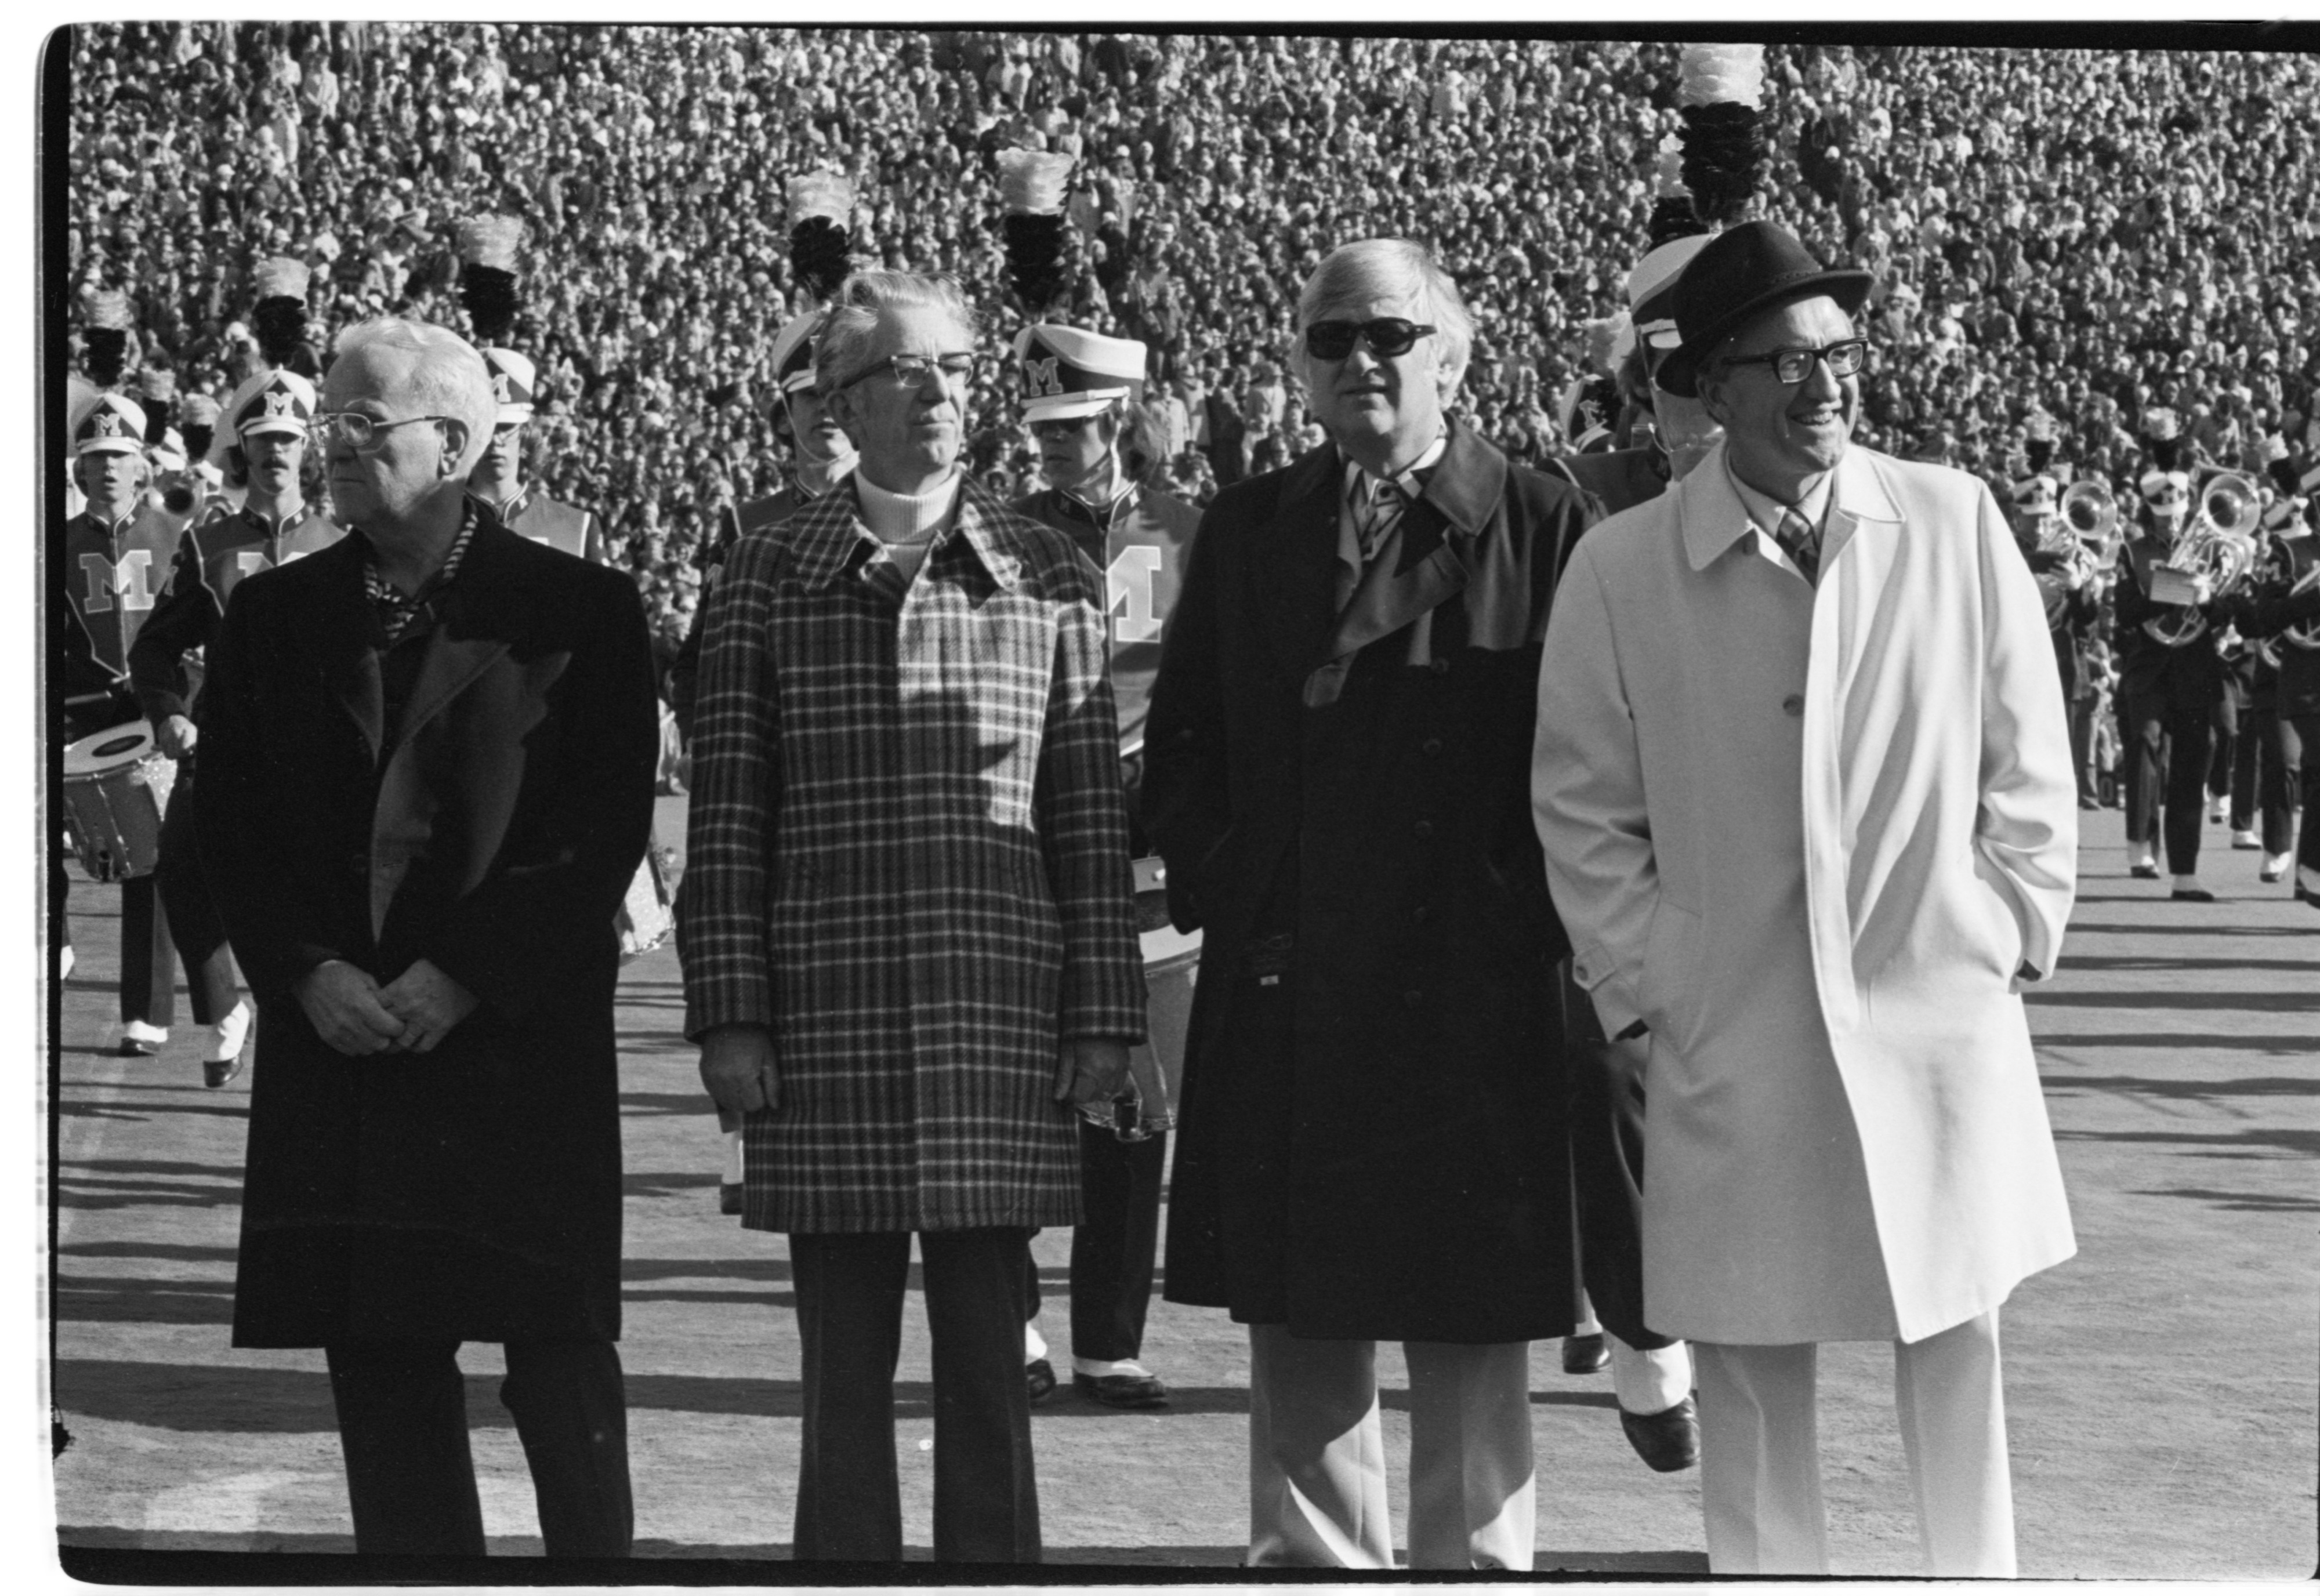 Bob Ufer Inducted Into Media Hall of Fame at Halftime of Michigan - Ohio State Game, November 1975 image